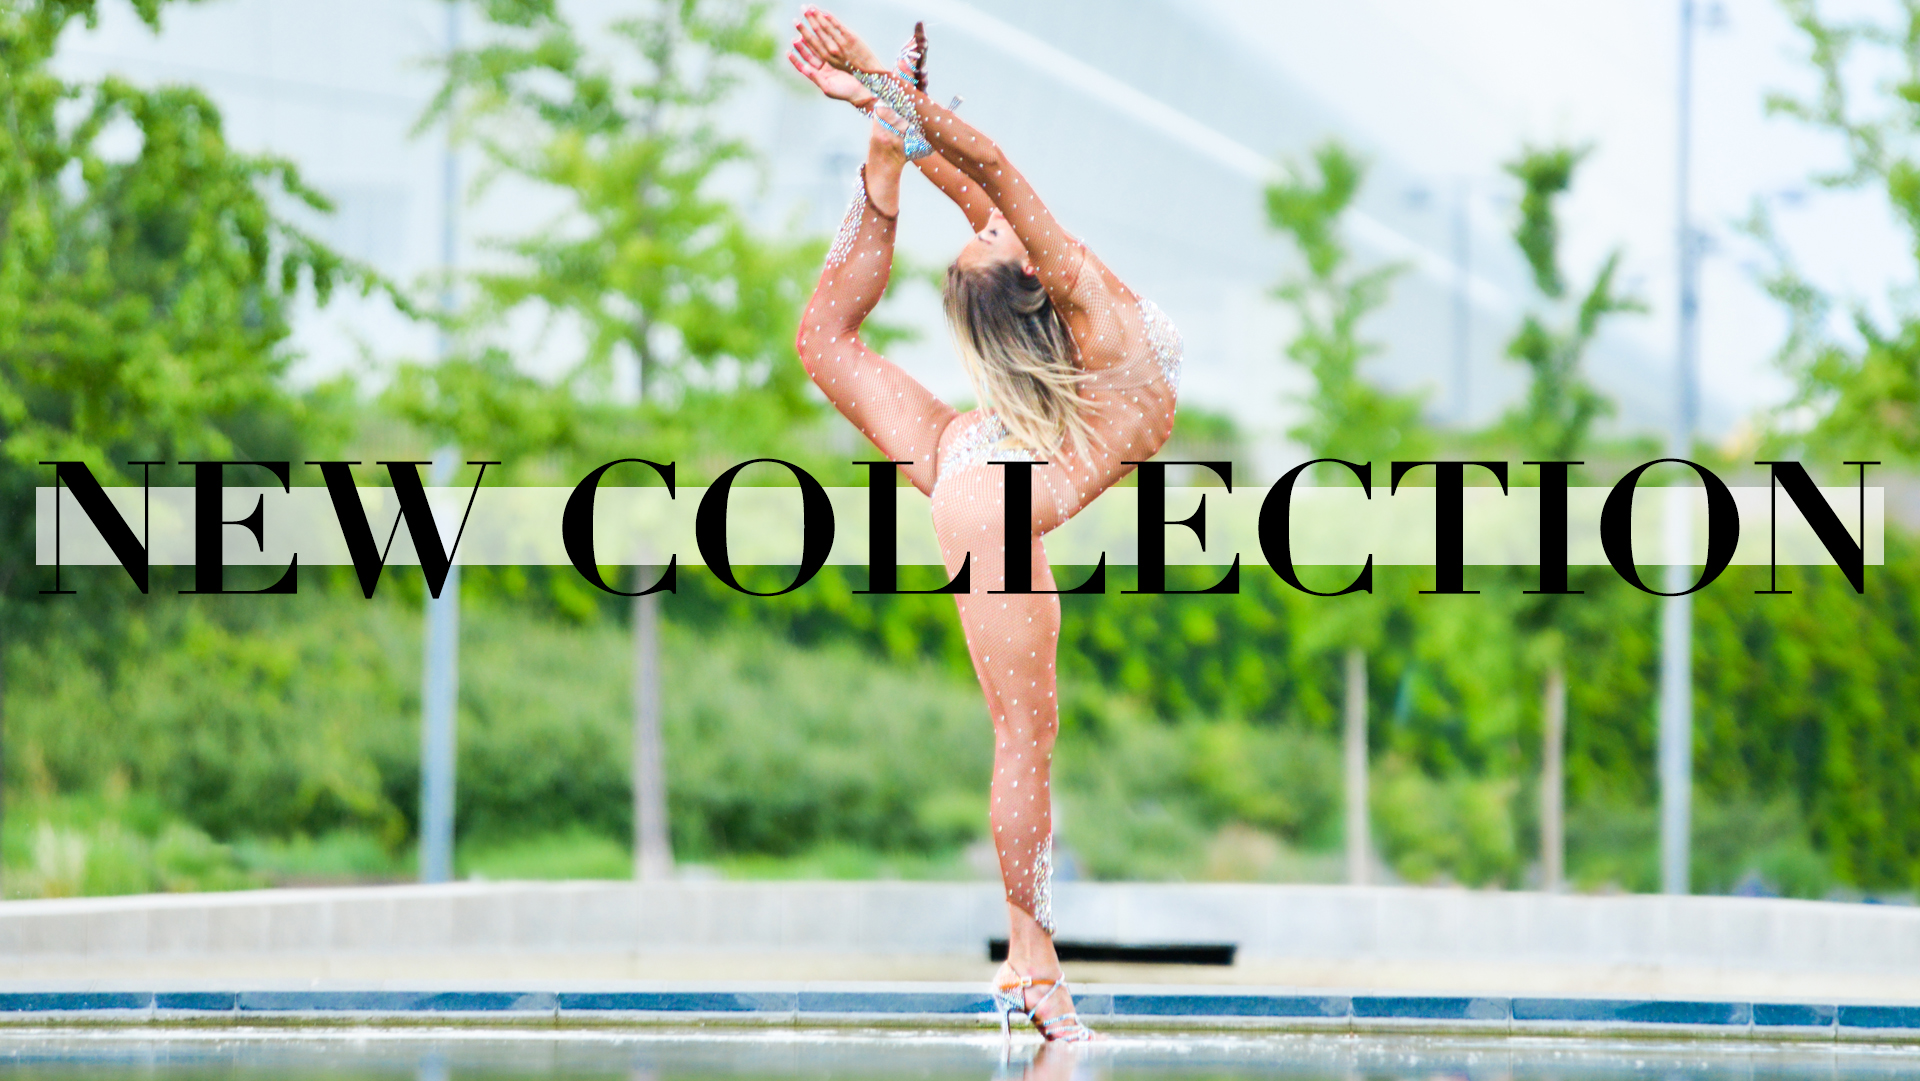 New Collection Slide 01